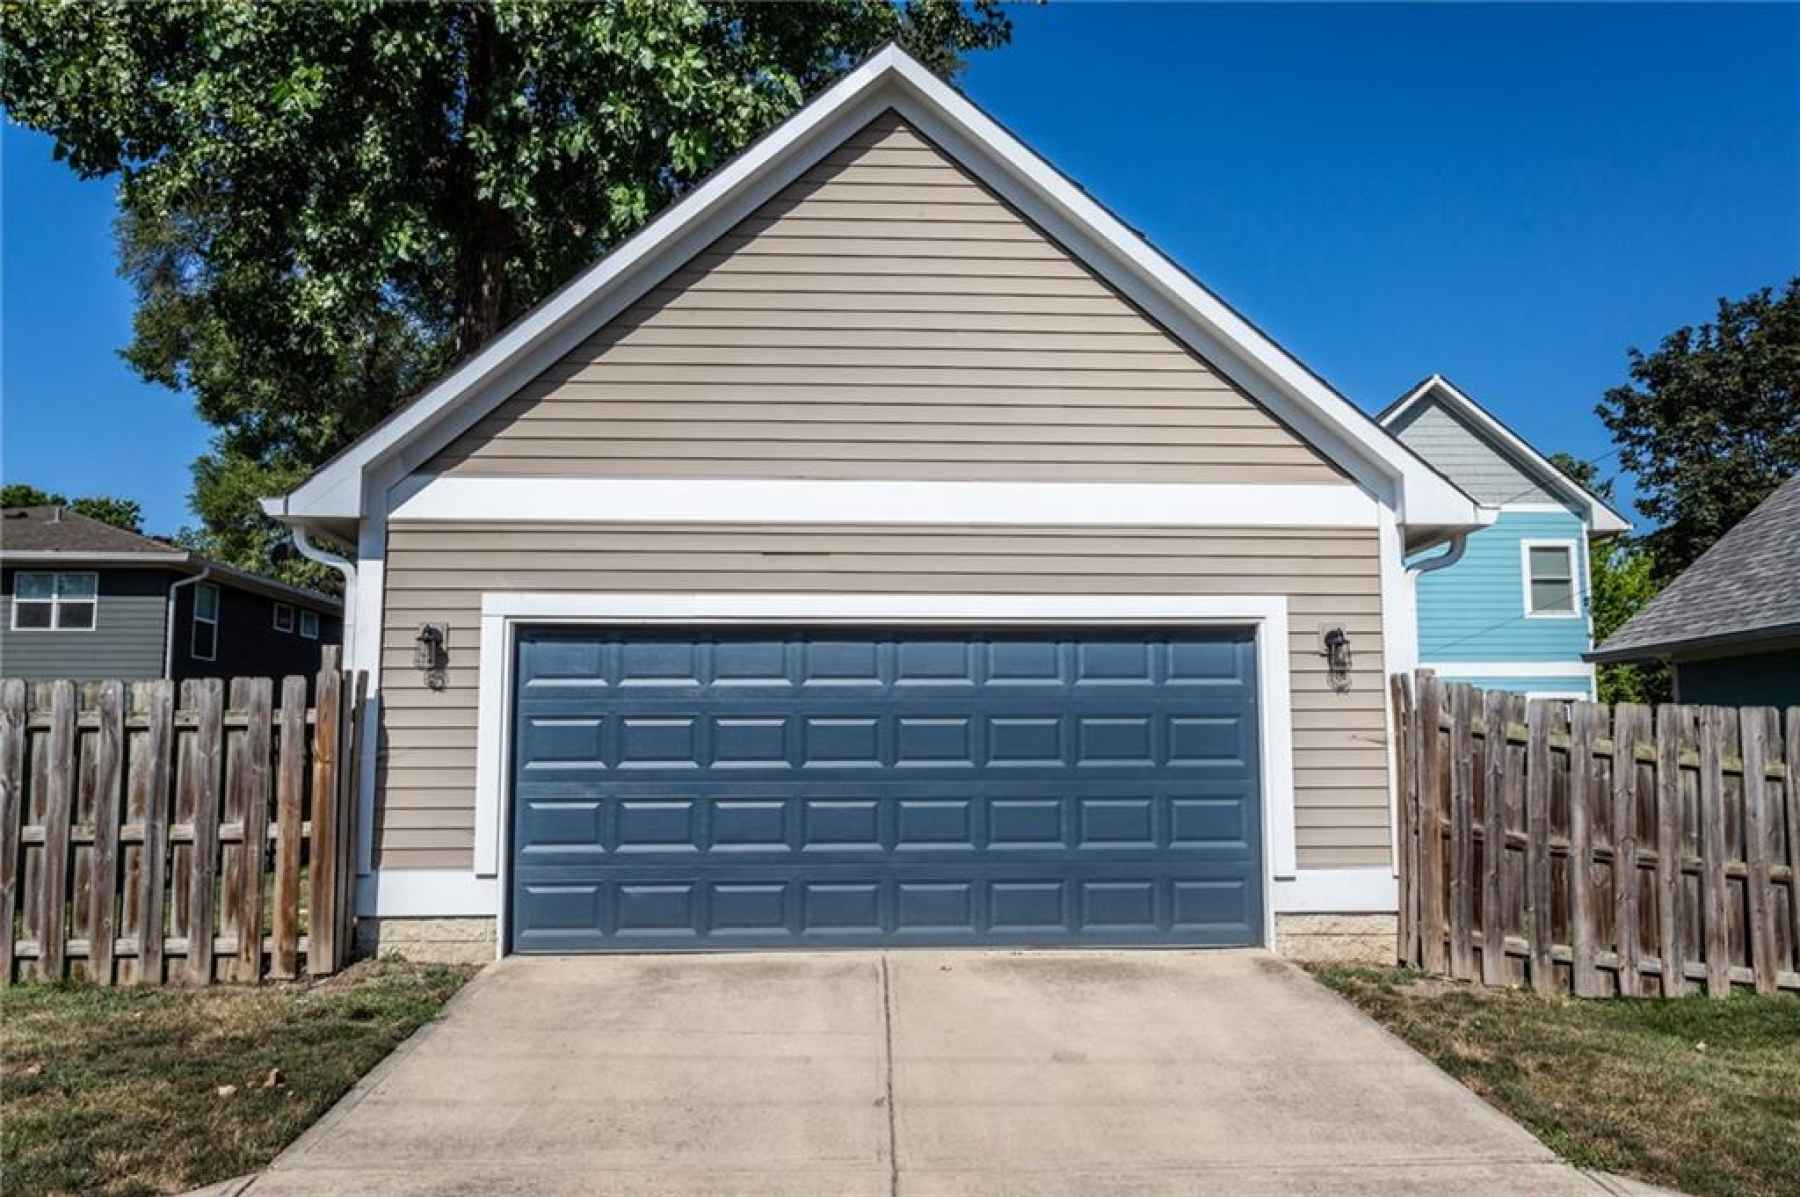 Garage with access from alley.